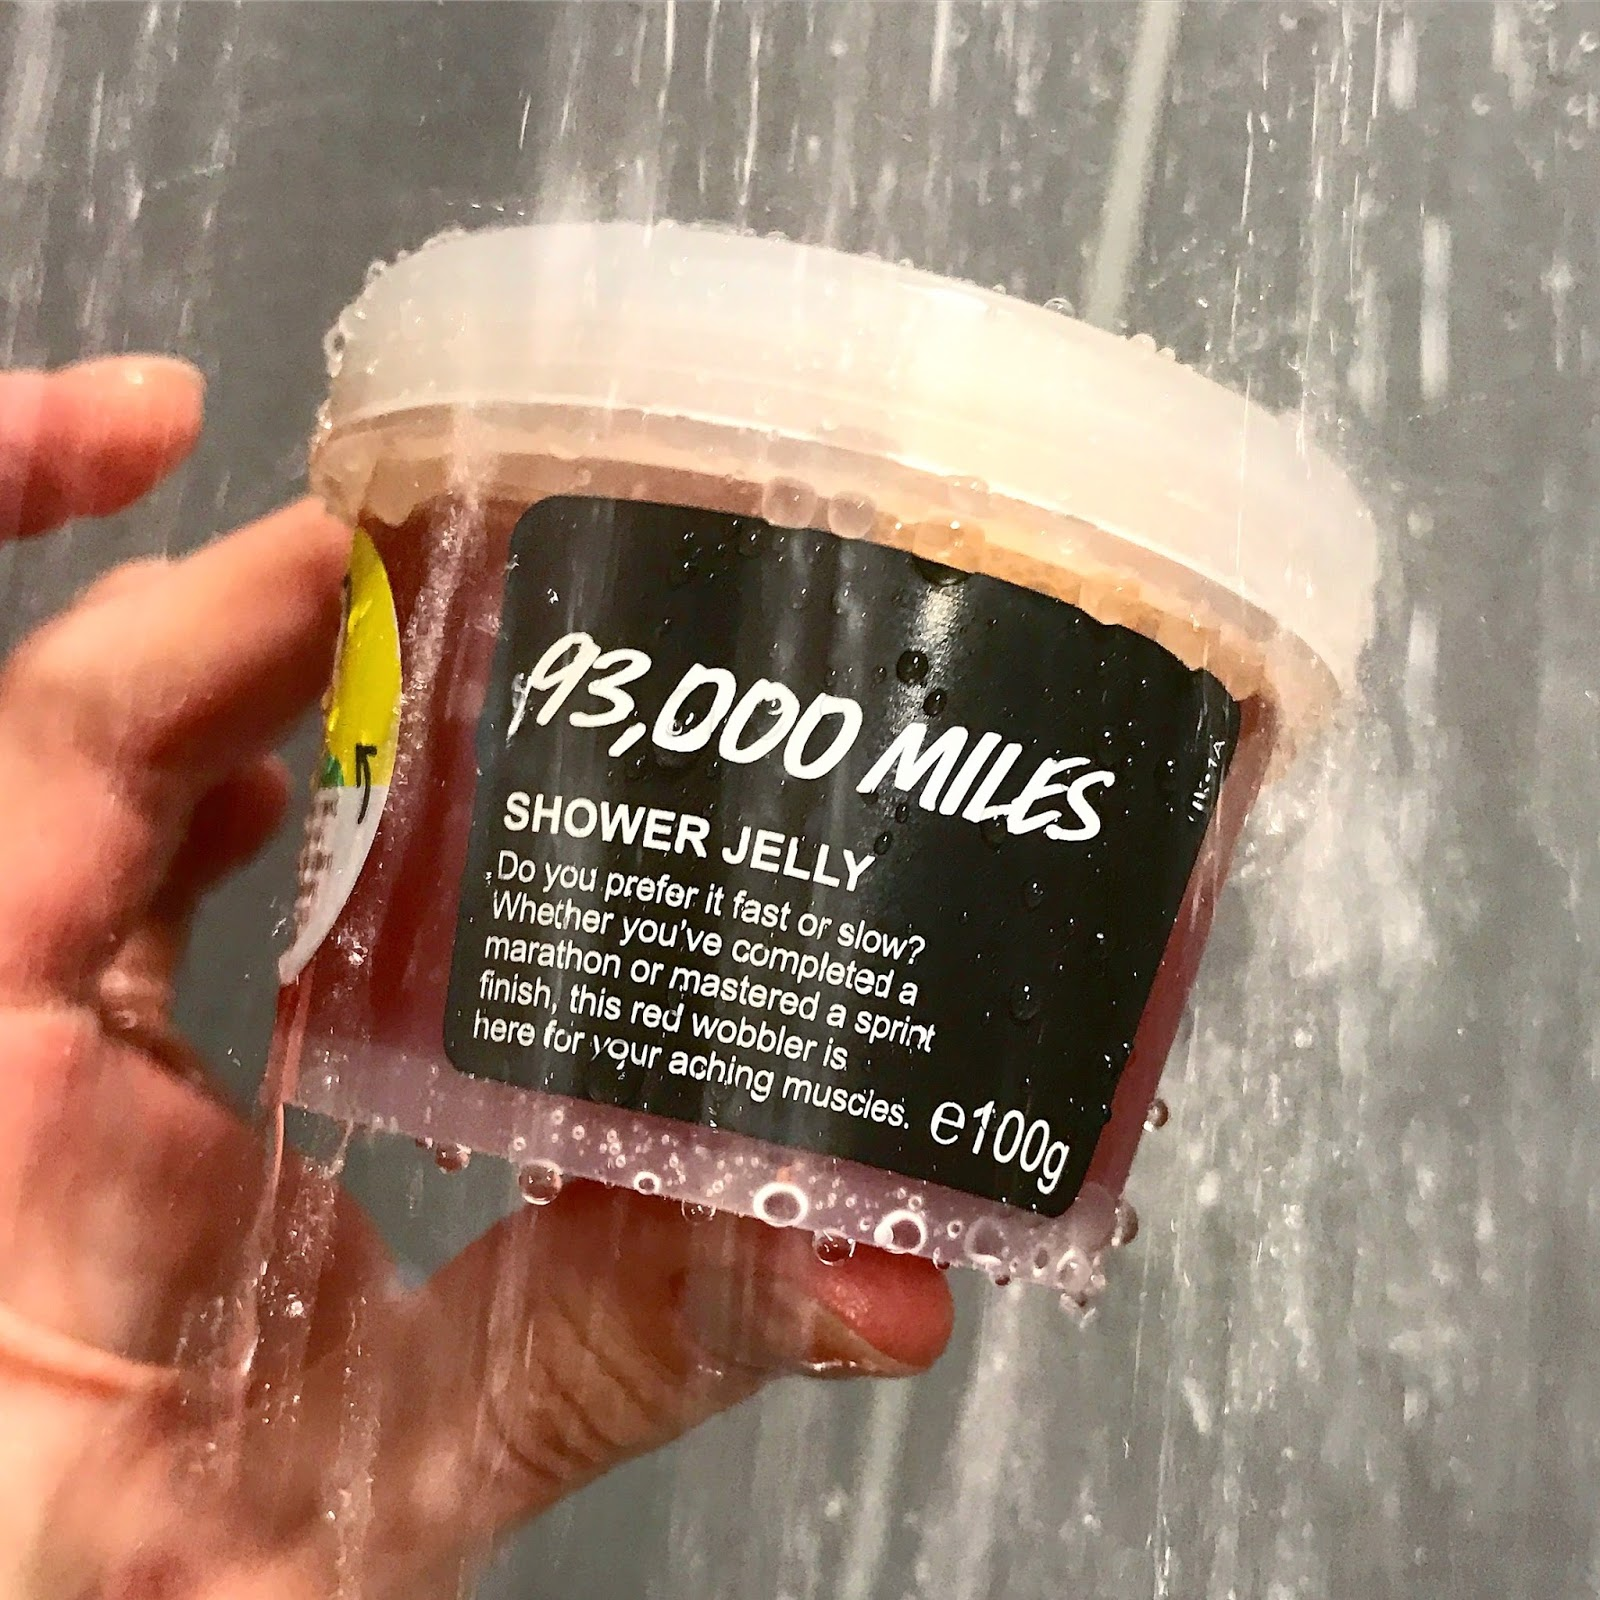 All Things Lush UK: 93000 Miles Shower Jelly